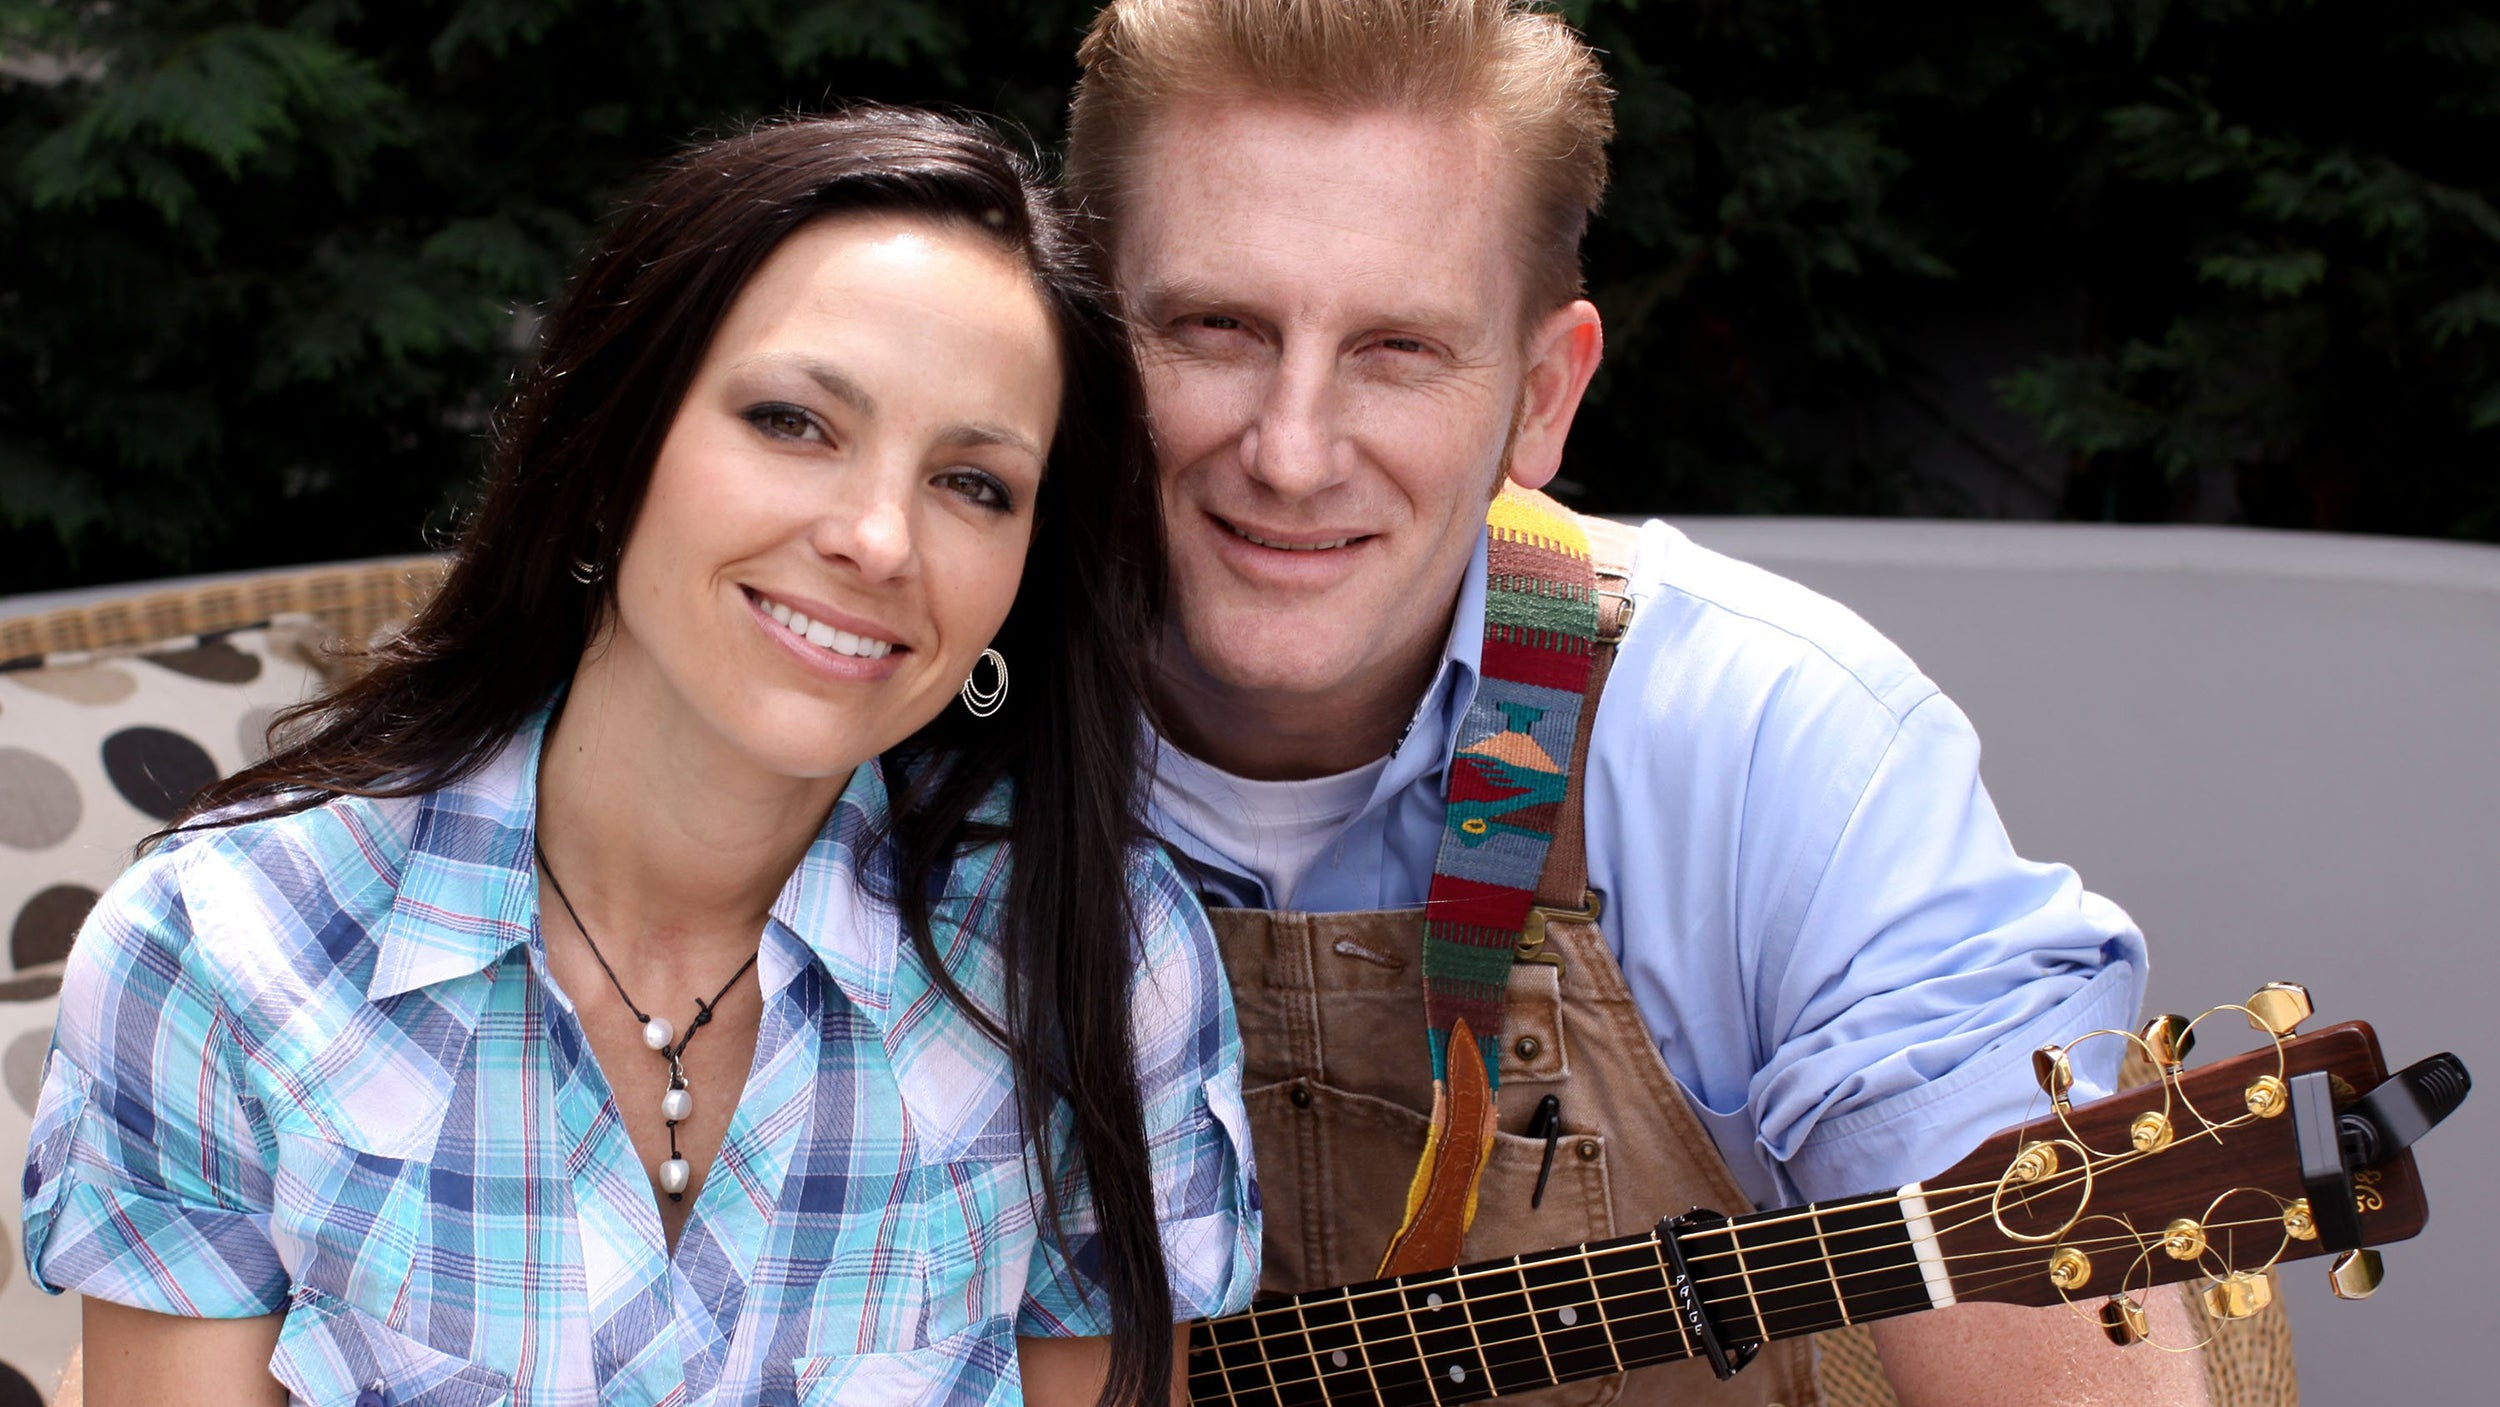 Little big town Songs | Joey Feek Buys Ticket For Rory To Attend Grammy Awards | Country Music Videos